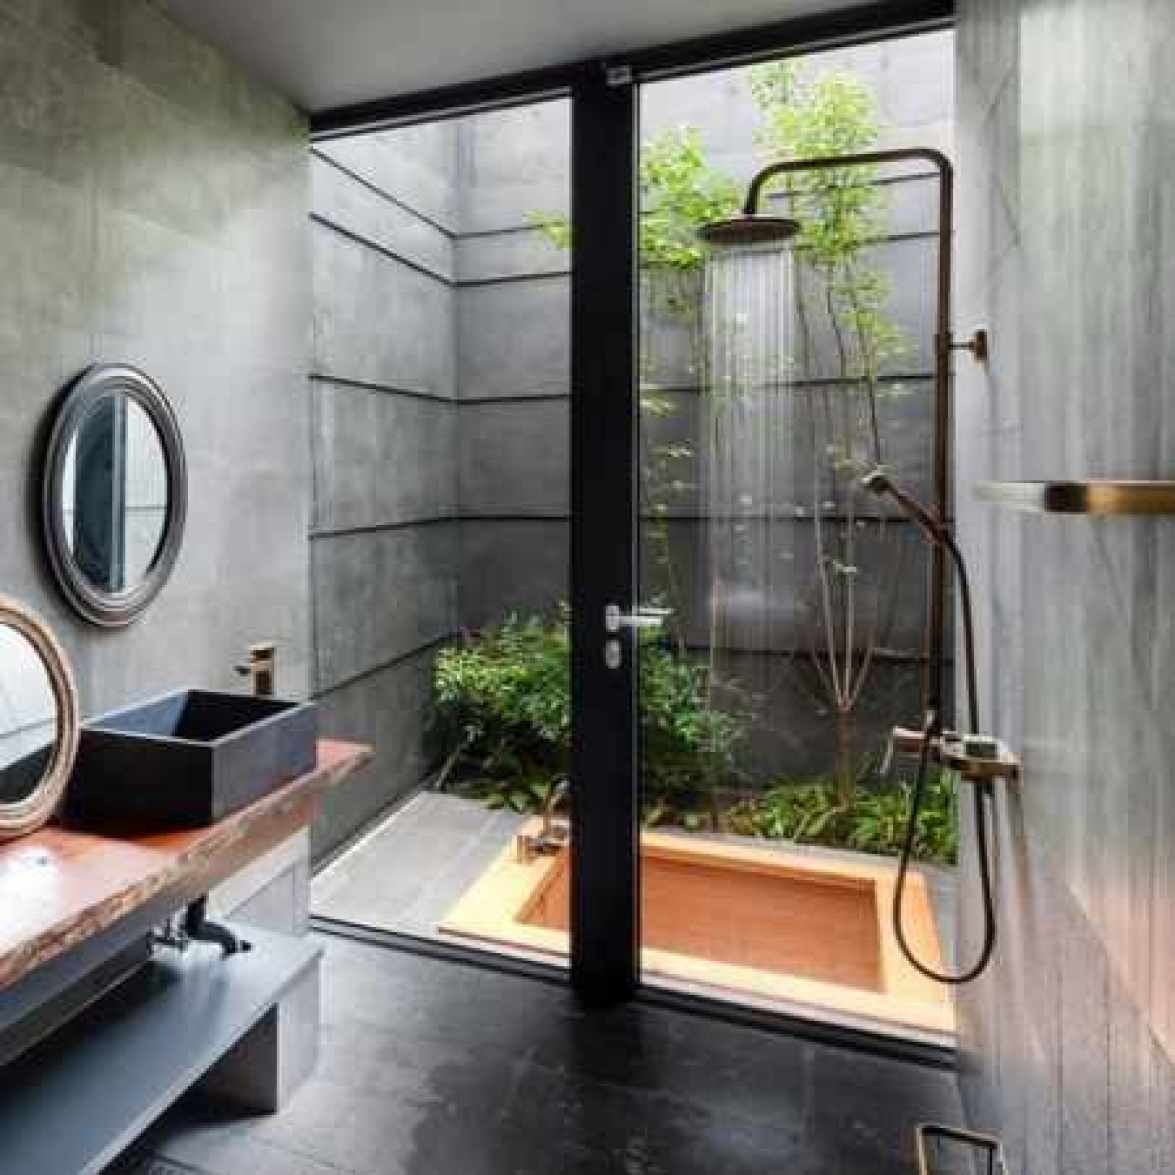 How To Create An Eco-Bathroom